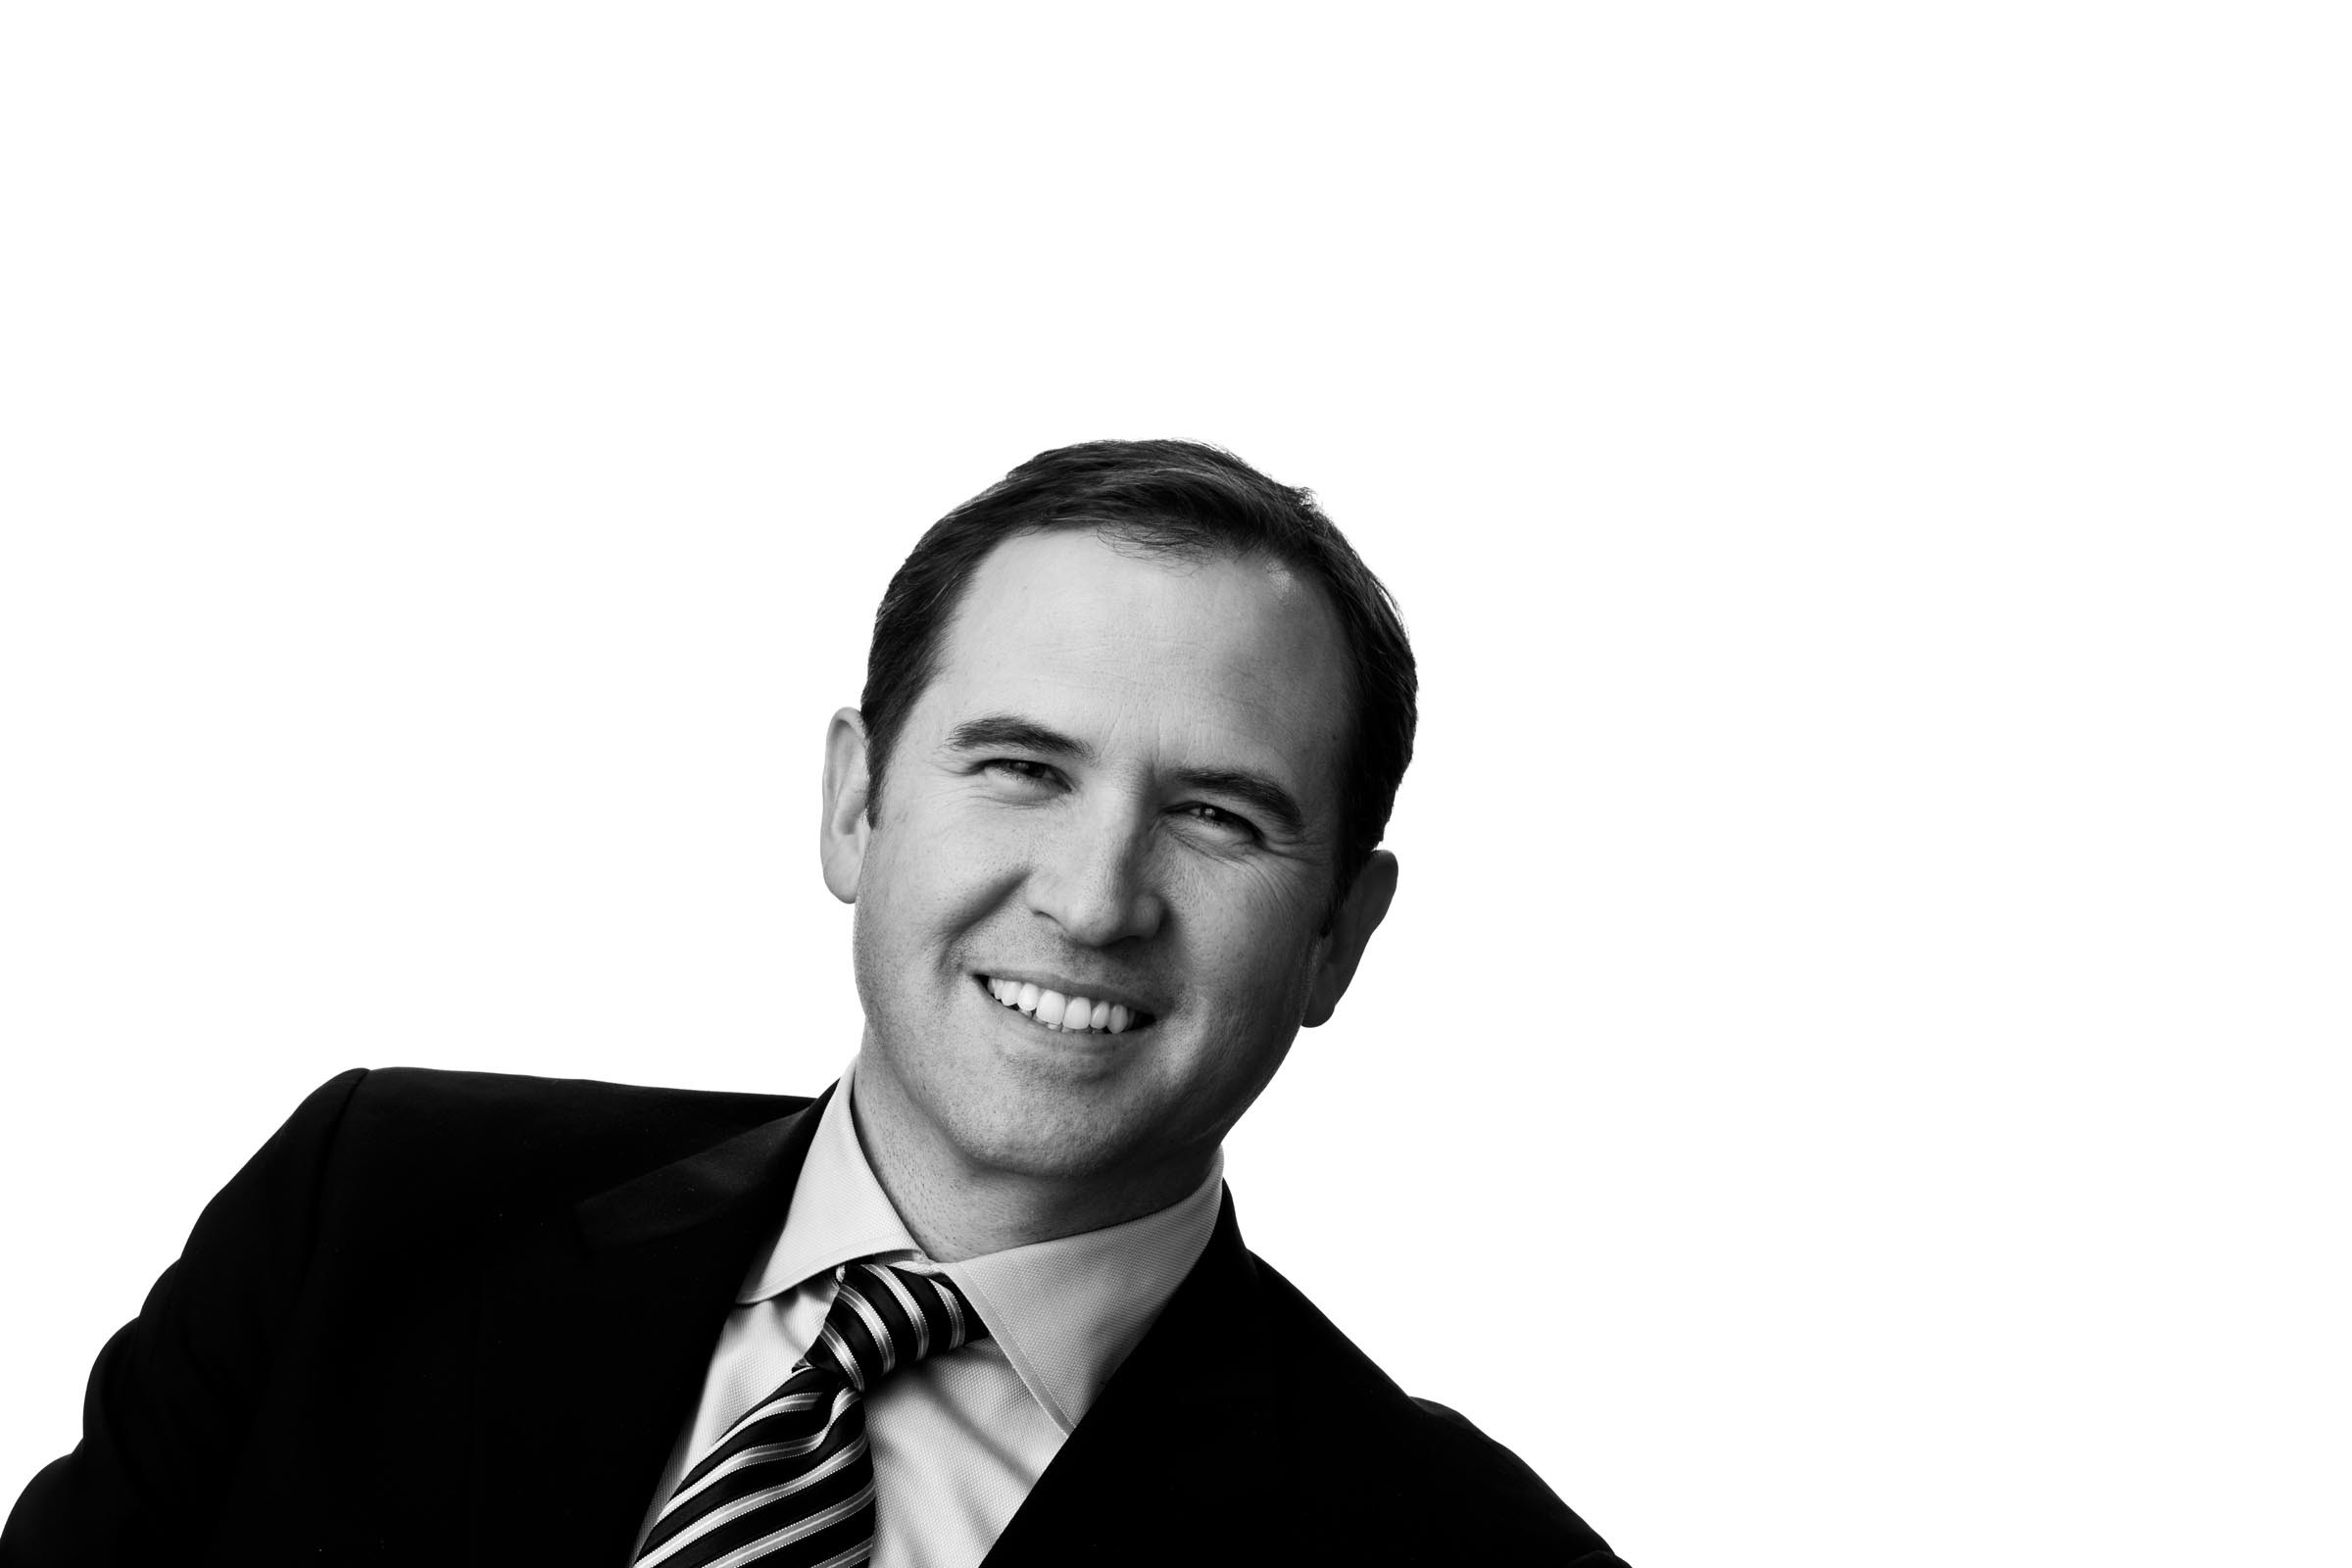 AOL's Brad Garlinghouse Exits, May be Based on AOL Property Traffic